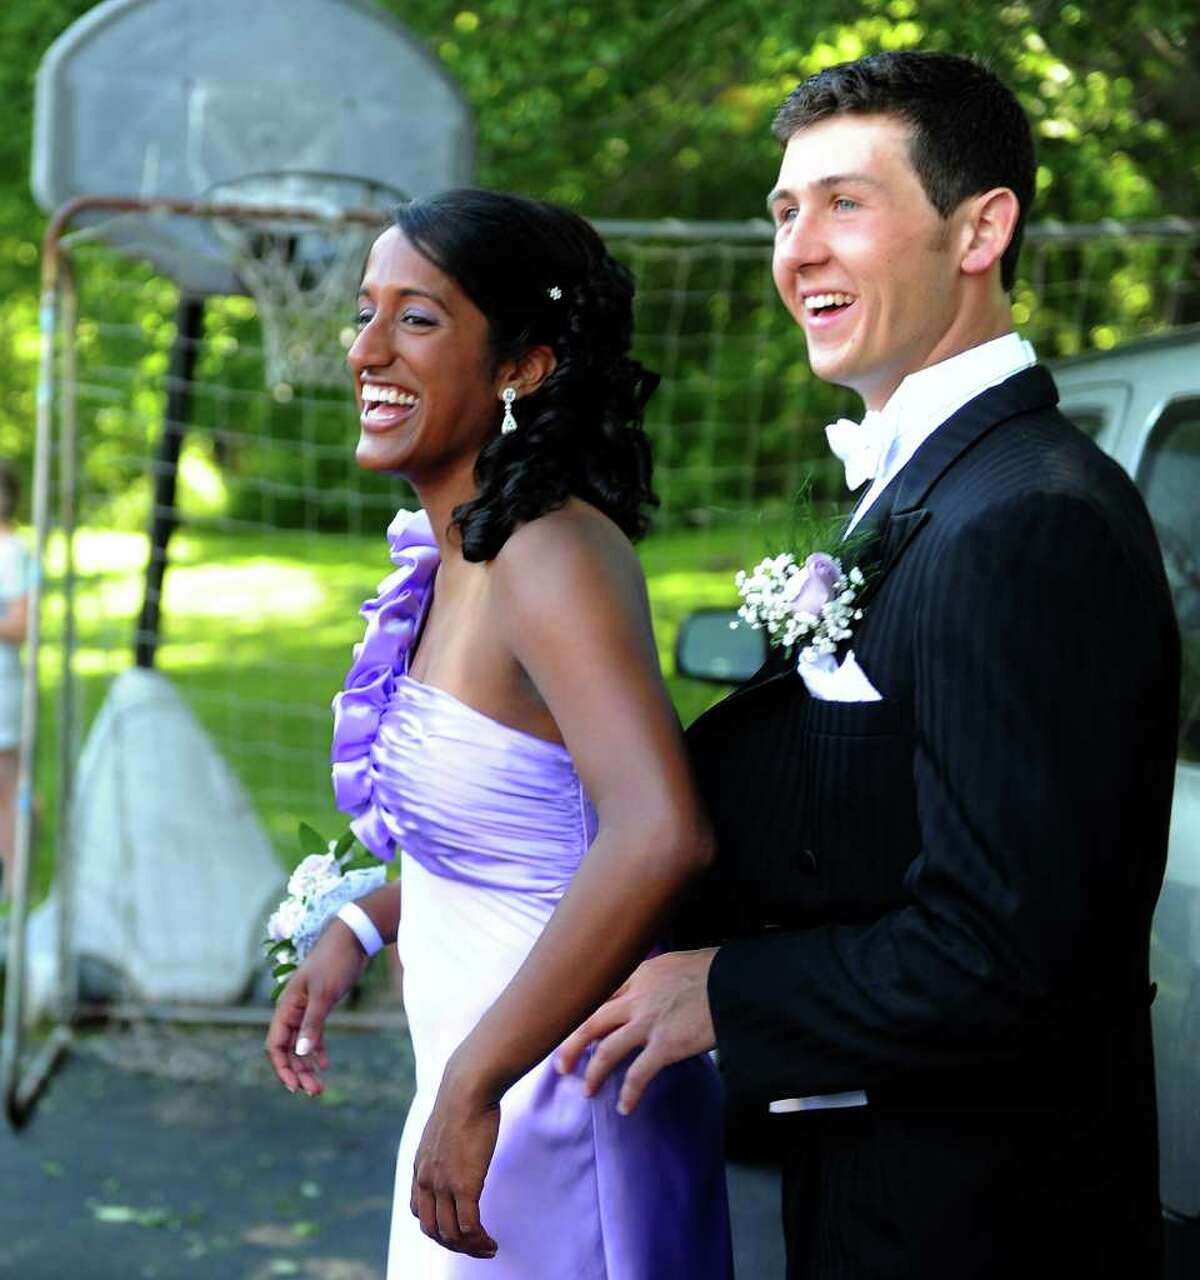 James Tate and Sonali Rodrigues pose for photos before going to their senior prom on Saturday, June 4, 2011.